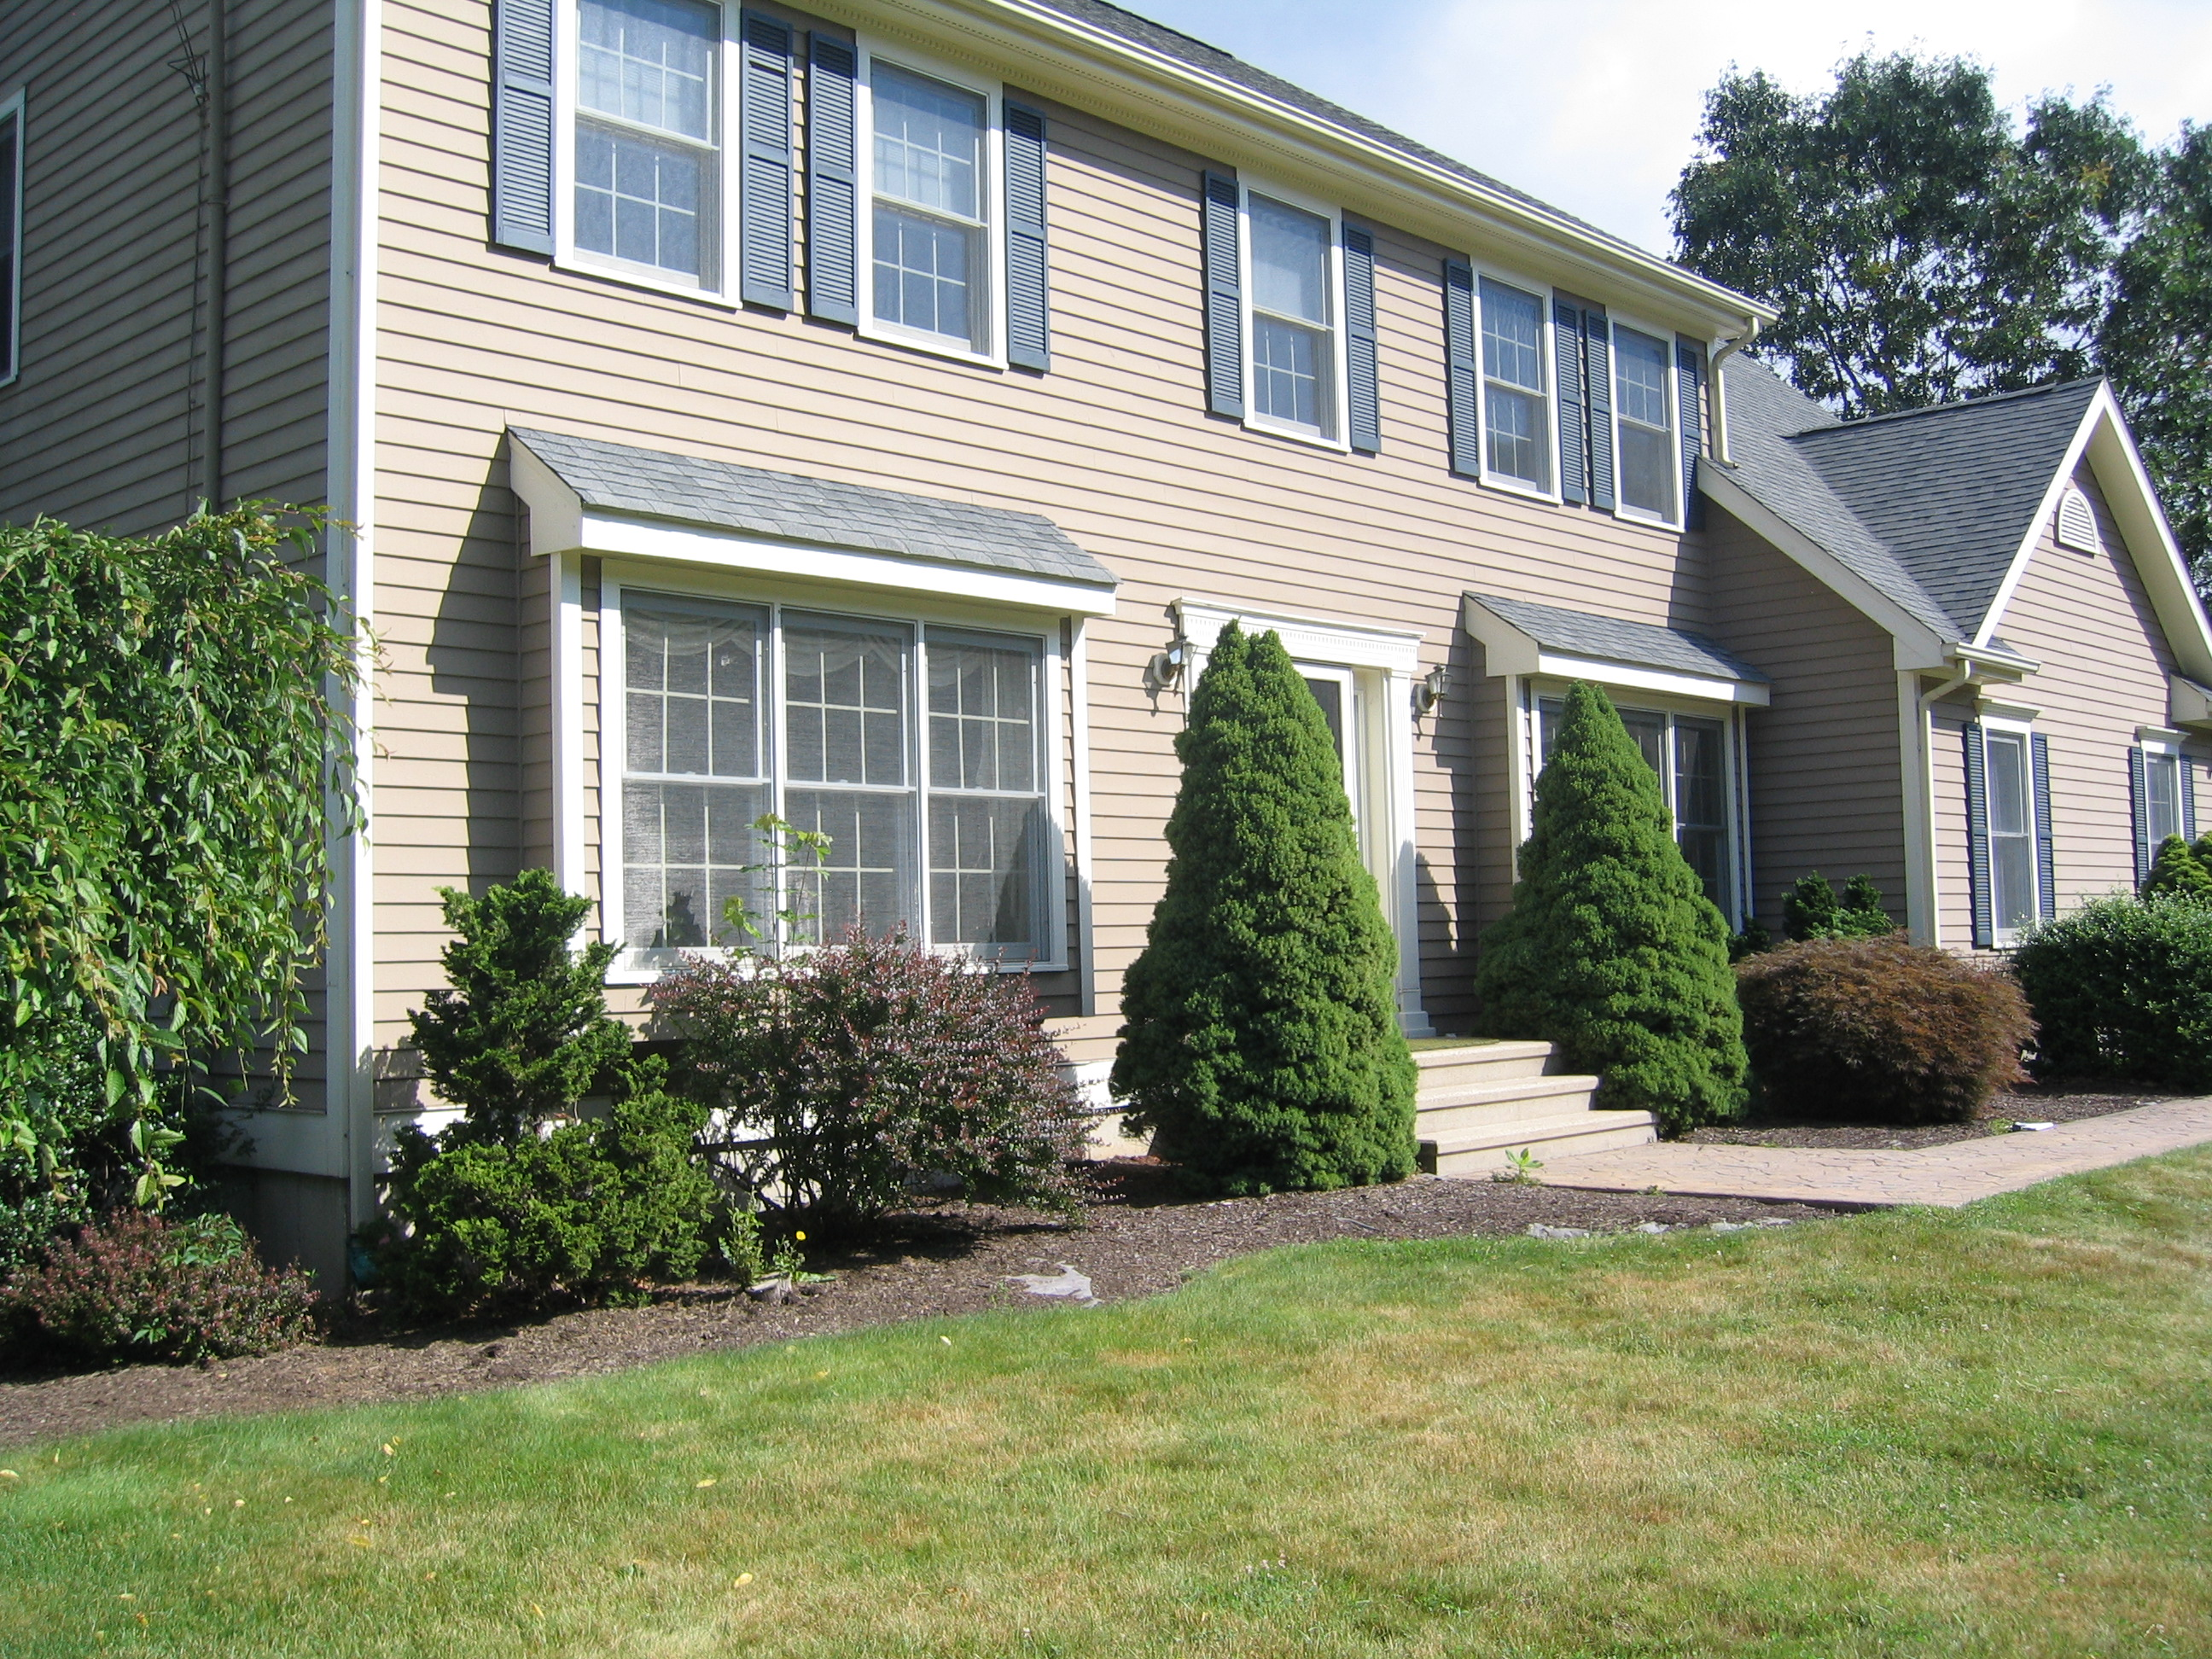 Digiorgi Roofing Amp Siding Inc Roofing Contractors In